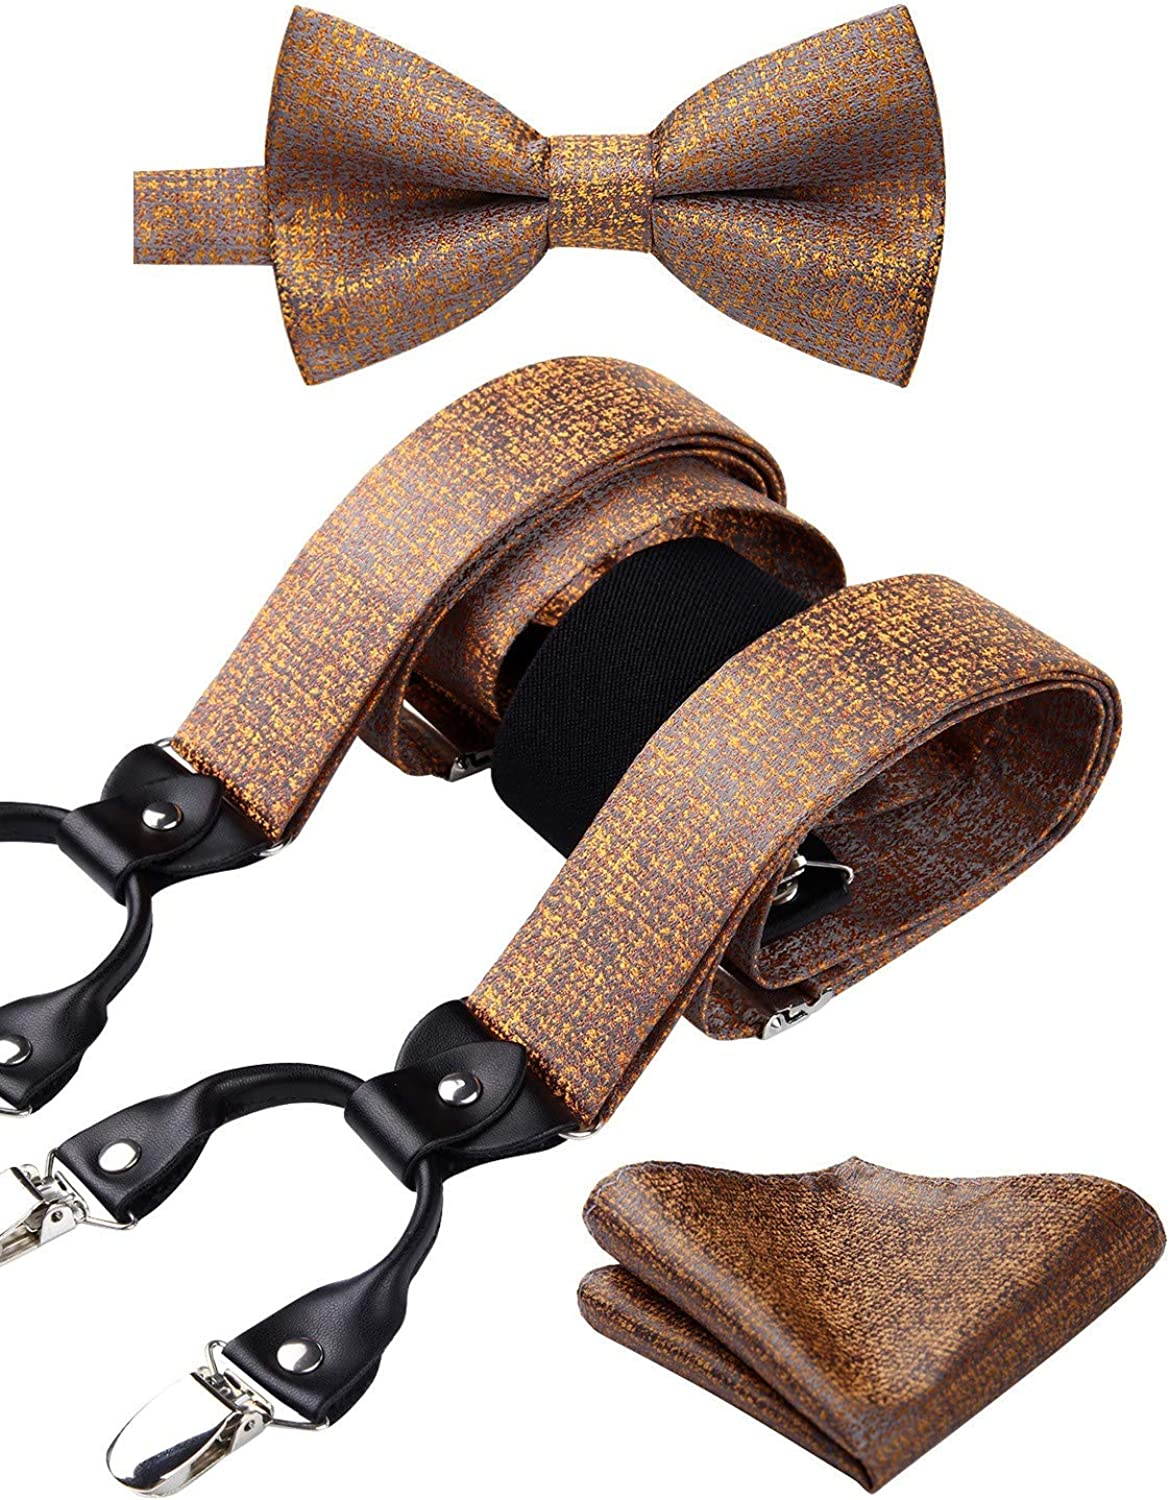 HISDERN Check 6 Clips Suspenders /& Bow Tie and Pocket Square Set Y Shape Adjustable Braces